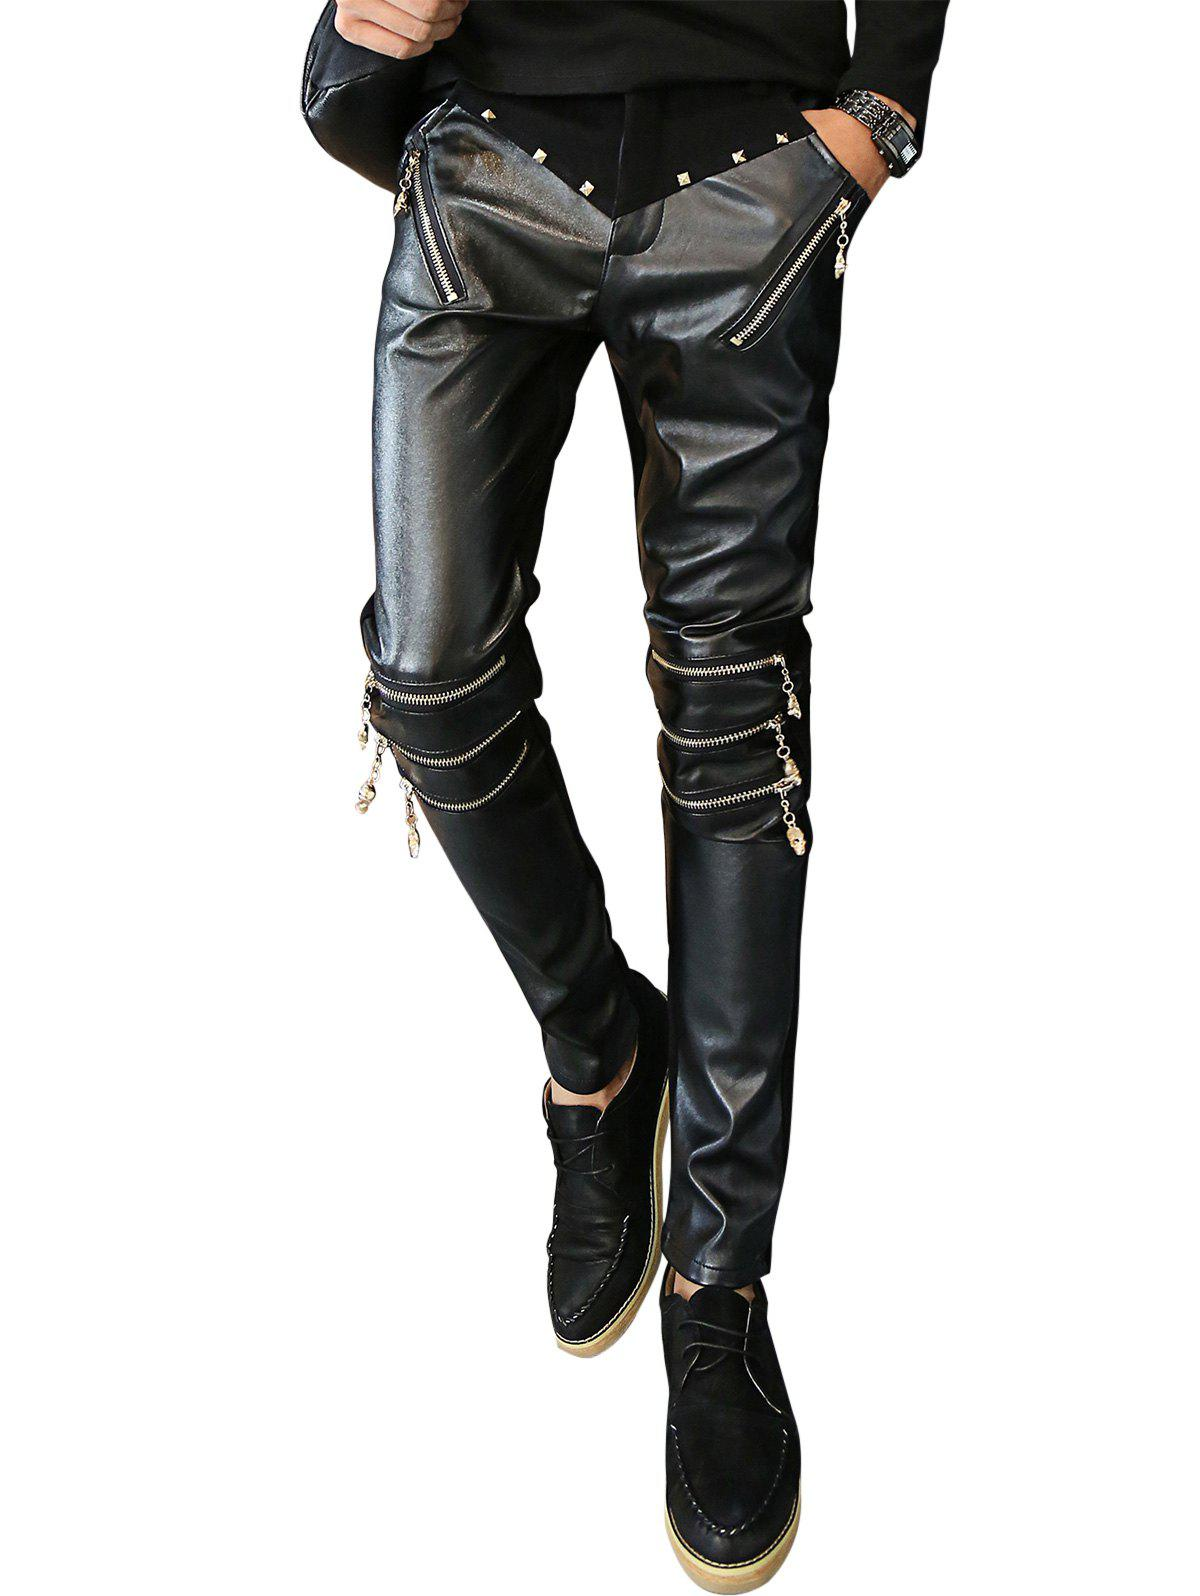 Rivet and Zip Embellished PU Panel Pants - BLACK 36